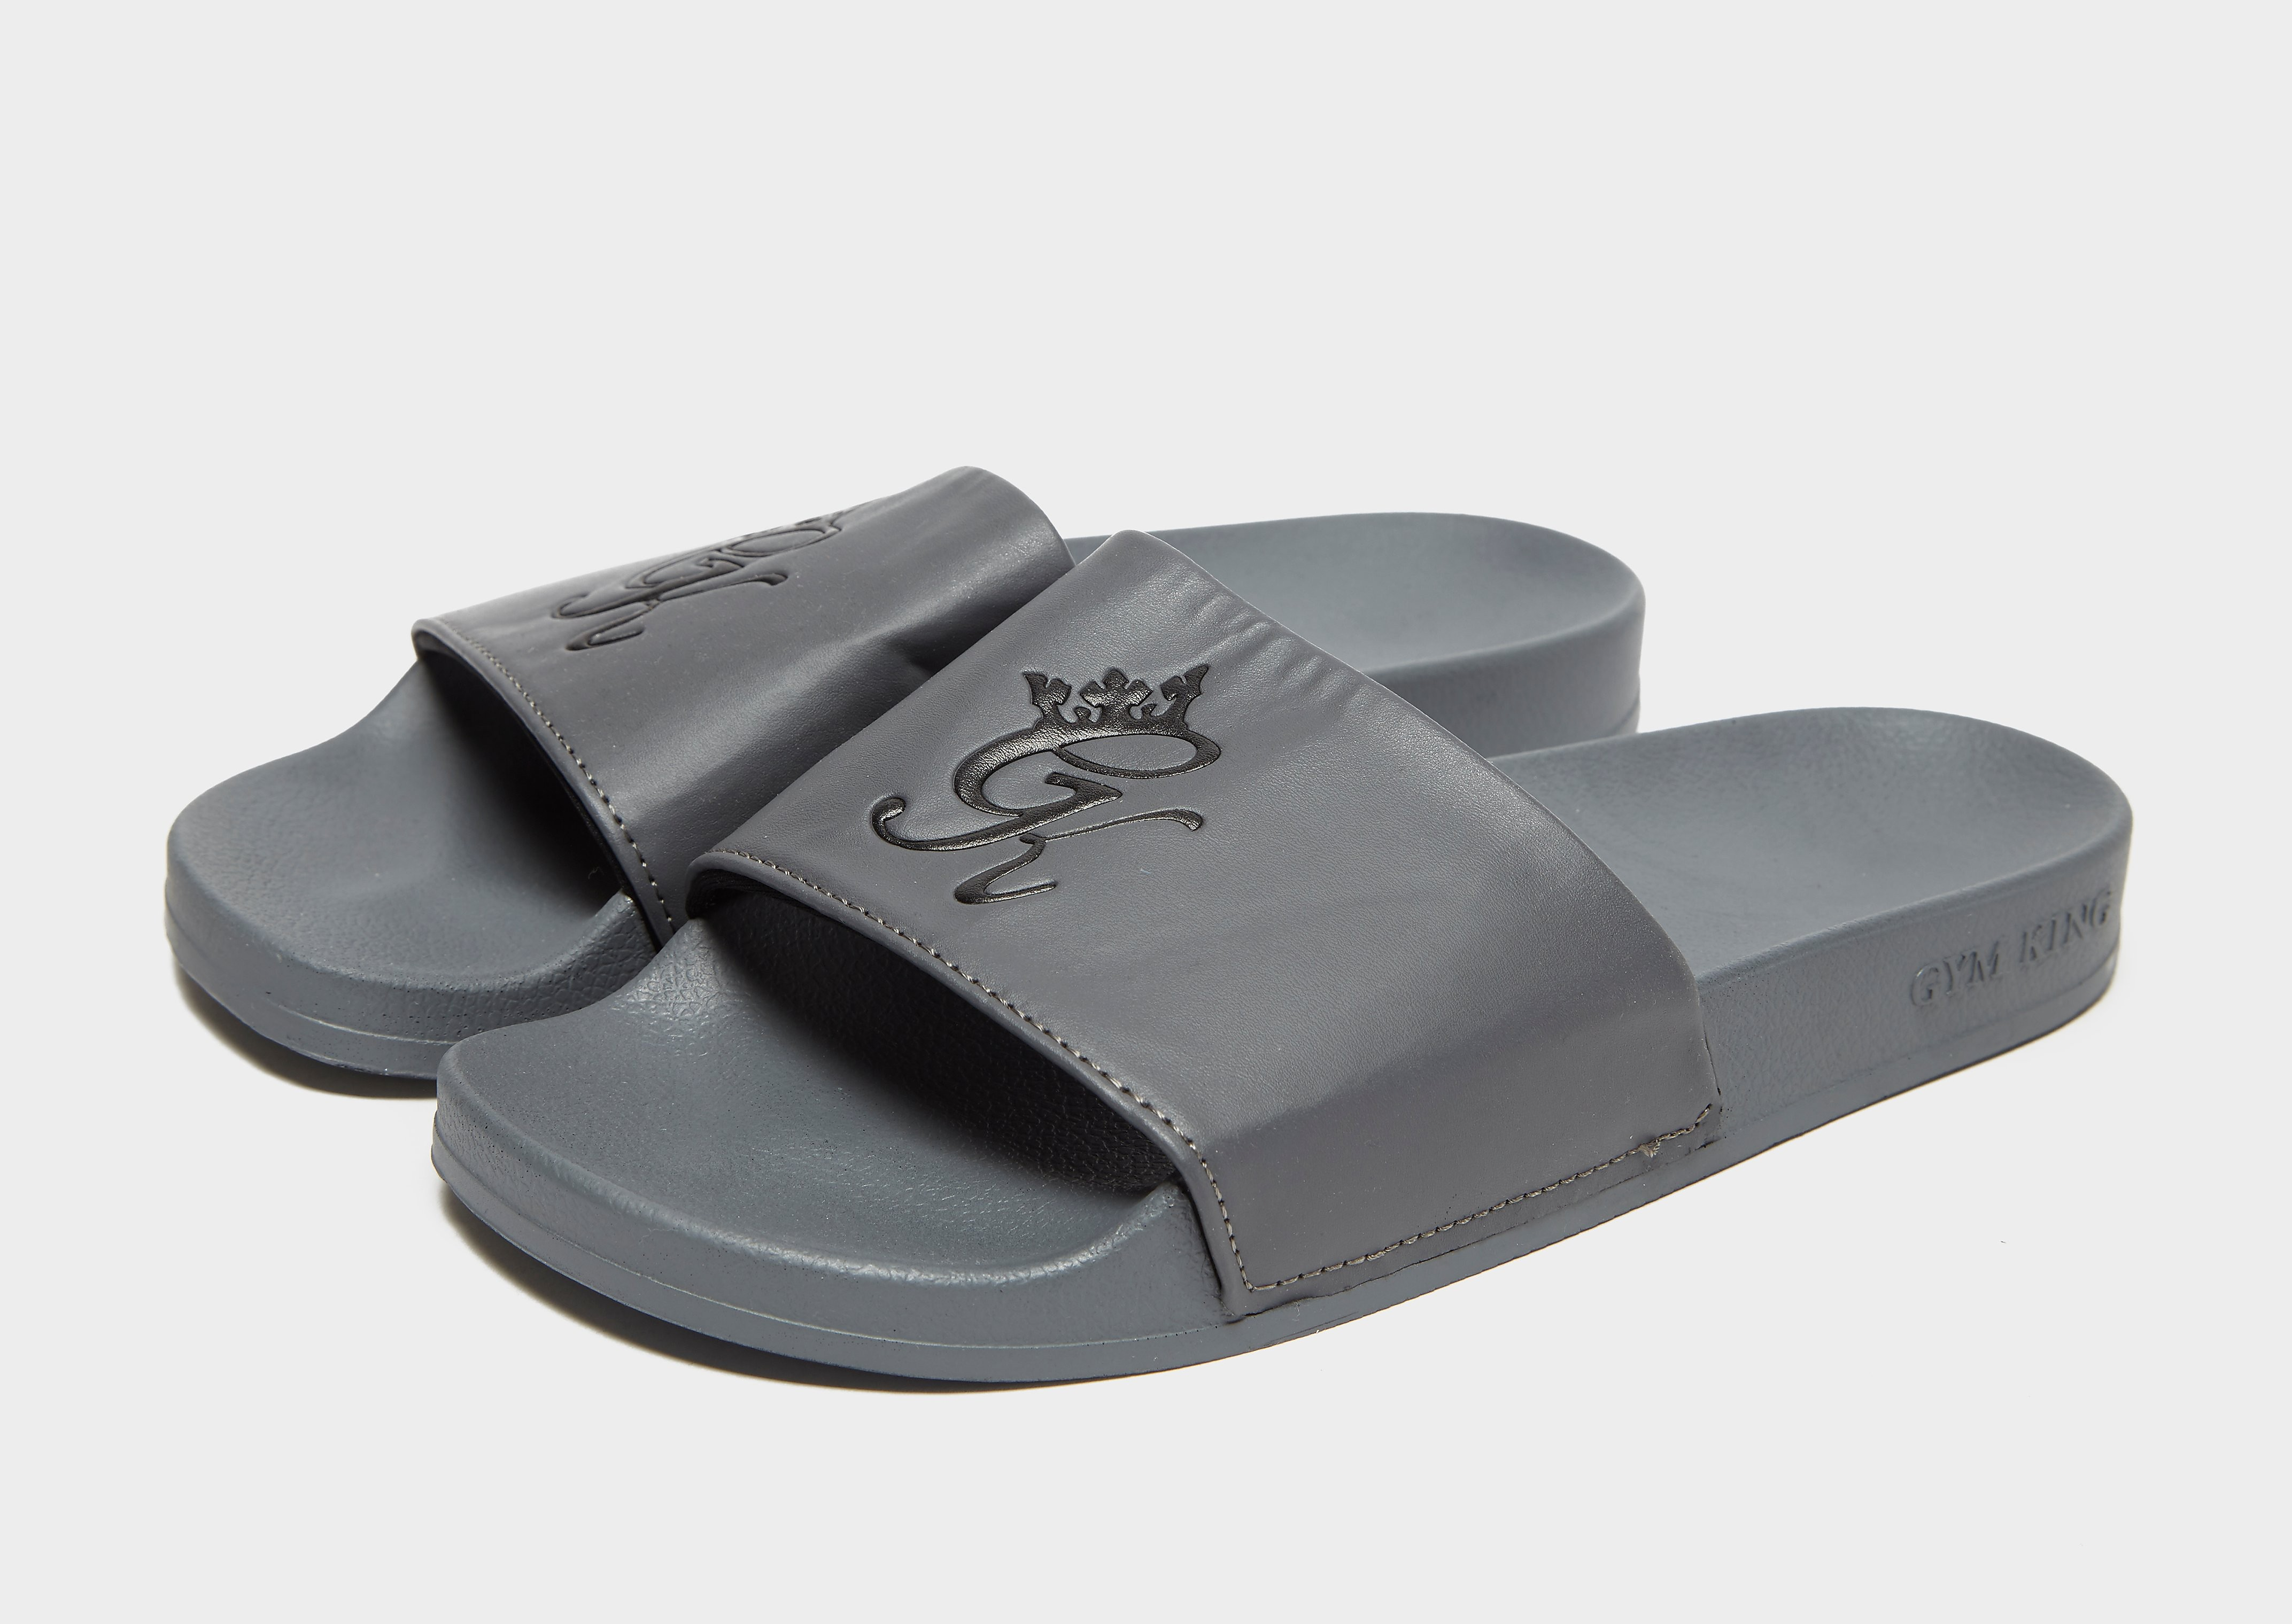 Gym King chanclas